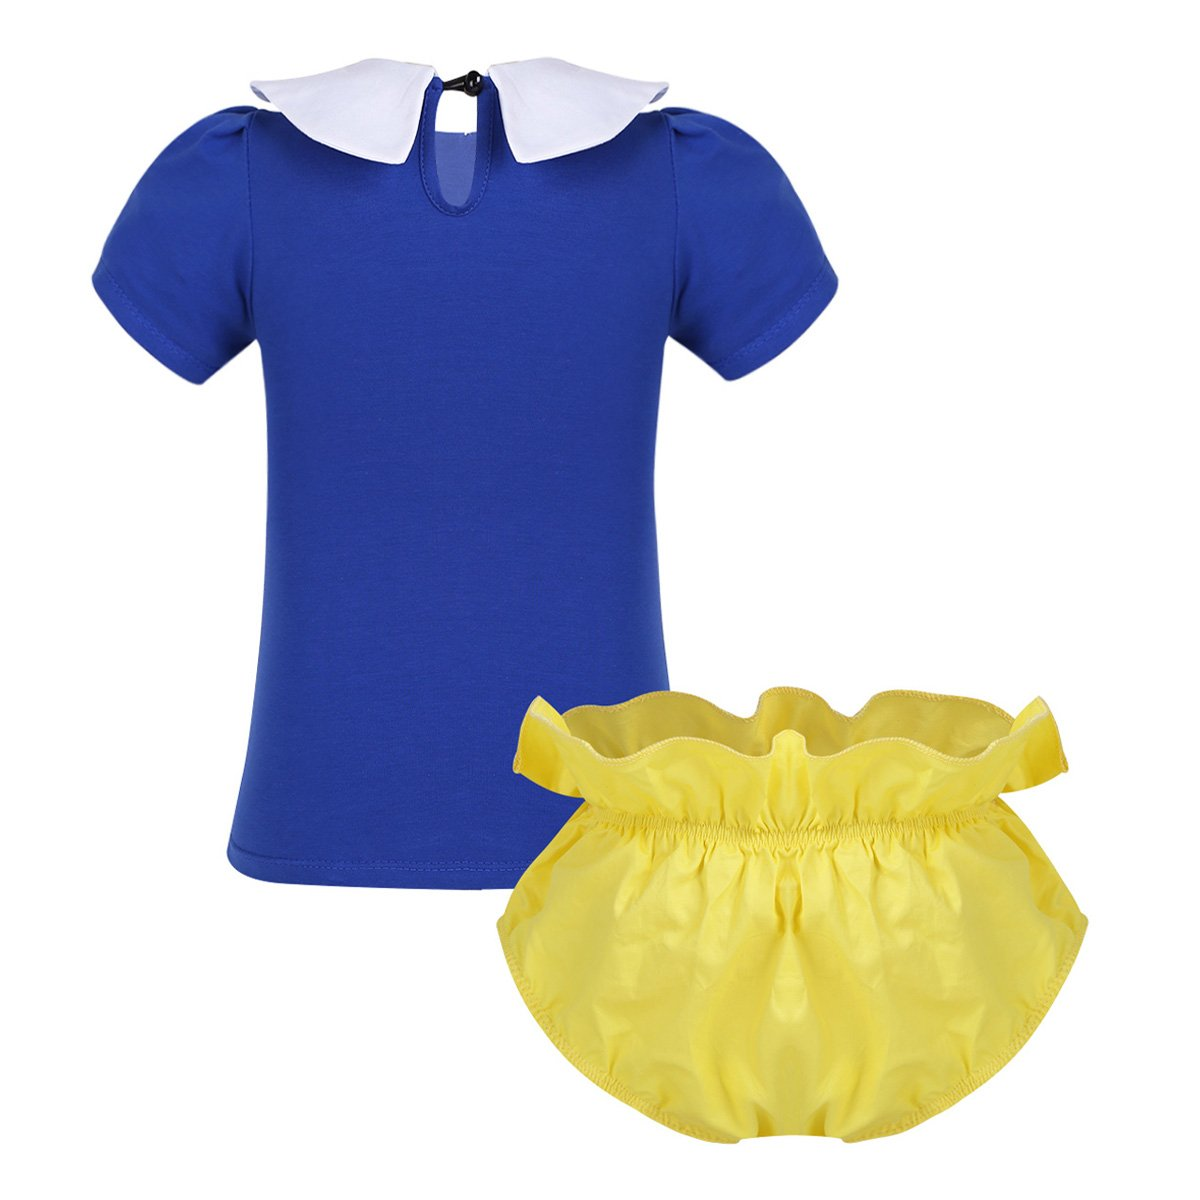 Freebily Infant Baby Girls Collar Prince Outfit Short Sleeve Printed Glittery One Tops with Bloomers Set Yellow/&Blue 18-24 Months